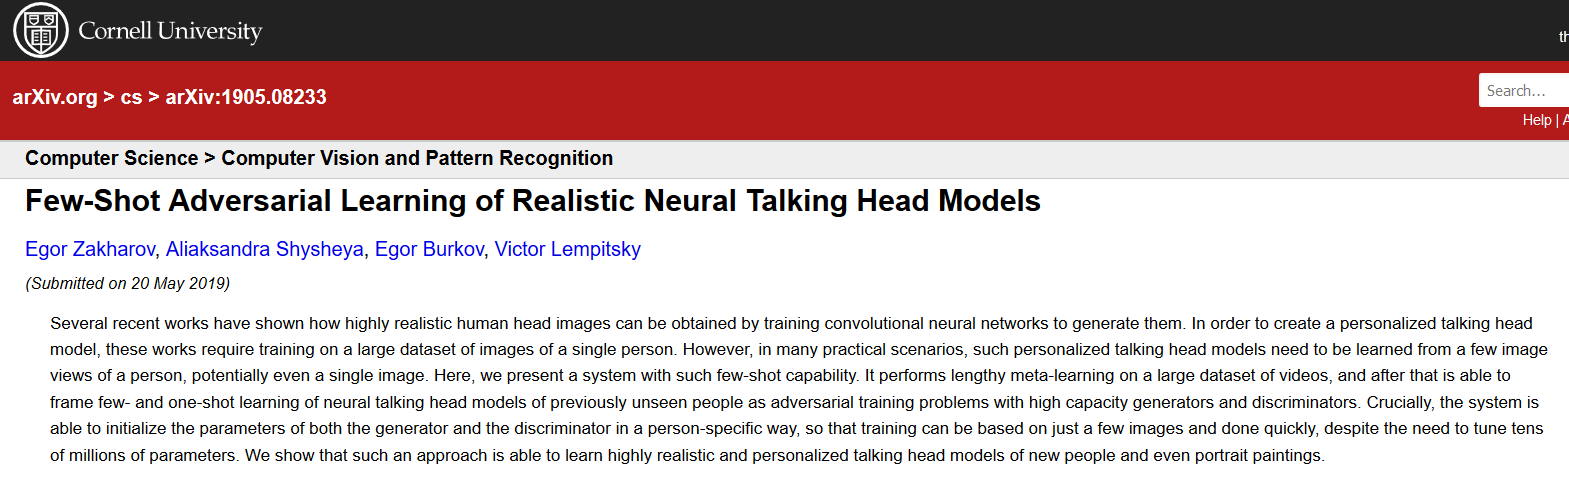 Screenshot_2019-05-25-Few-Shot-Adversarial-Learning-of-Realistic-Neural-Talking-Head-Models